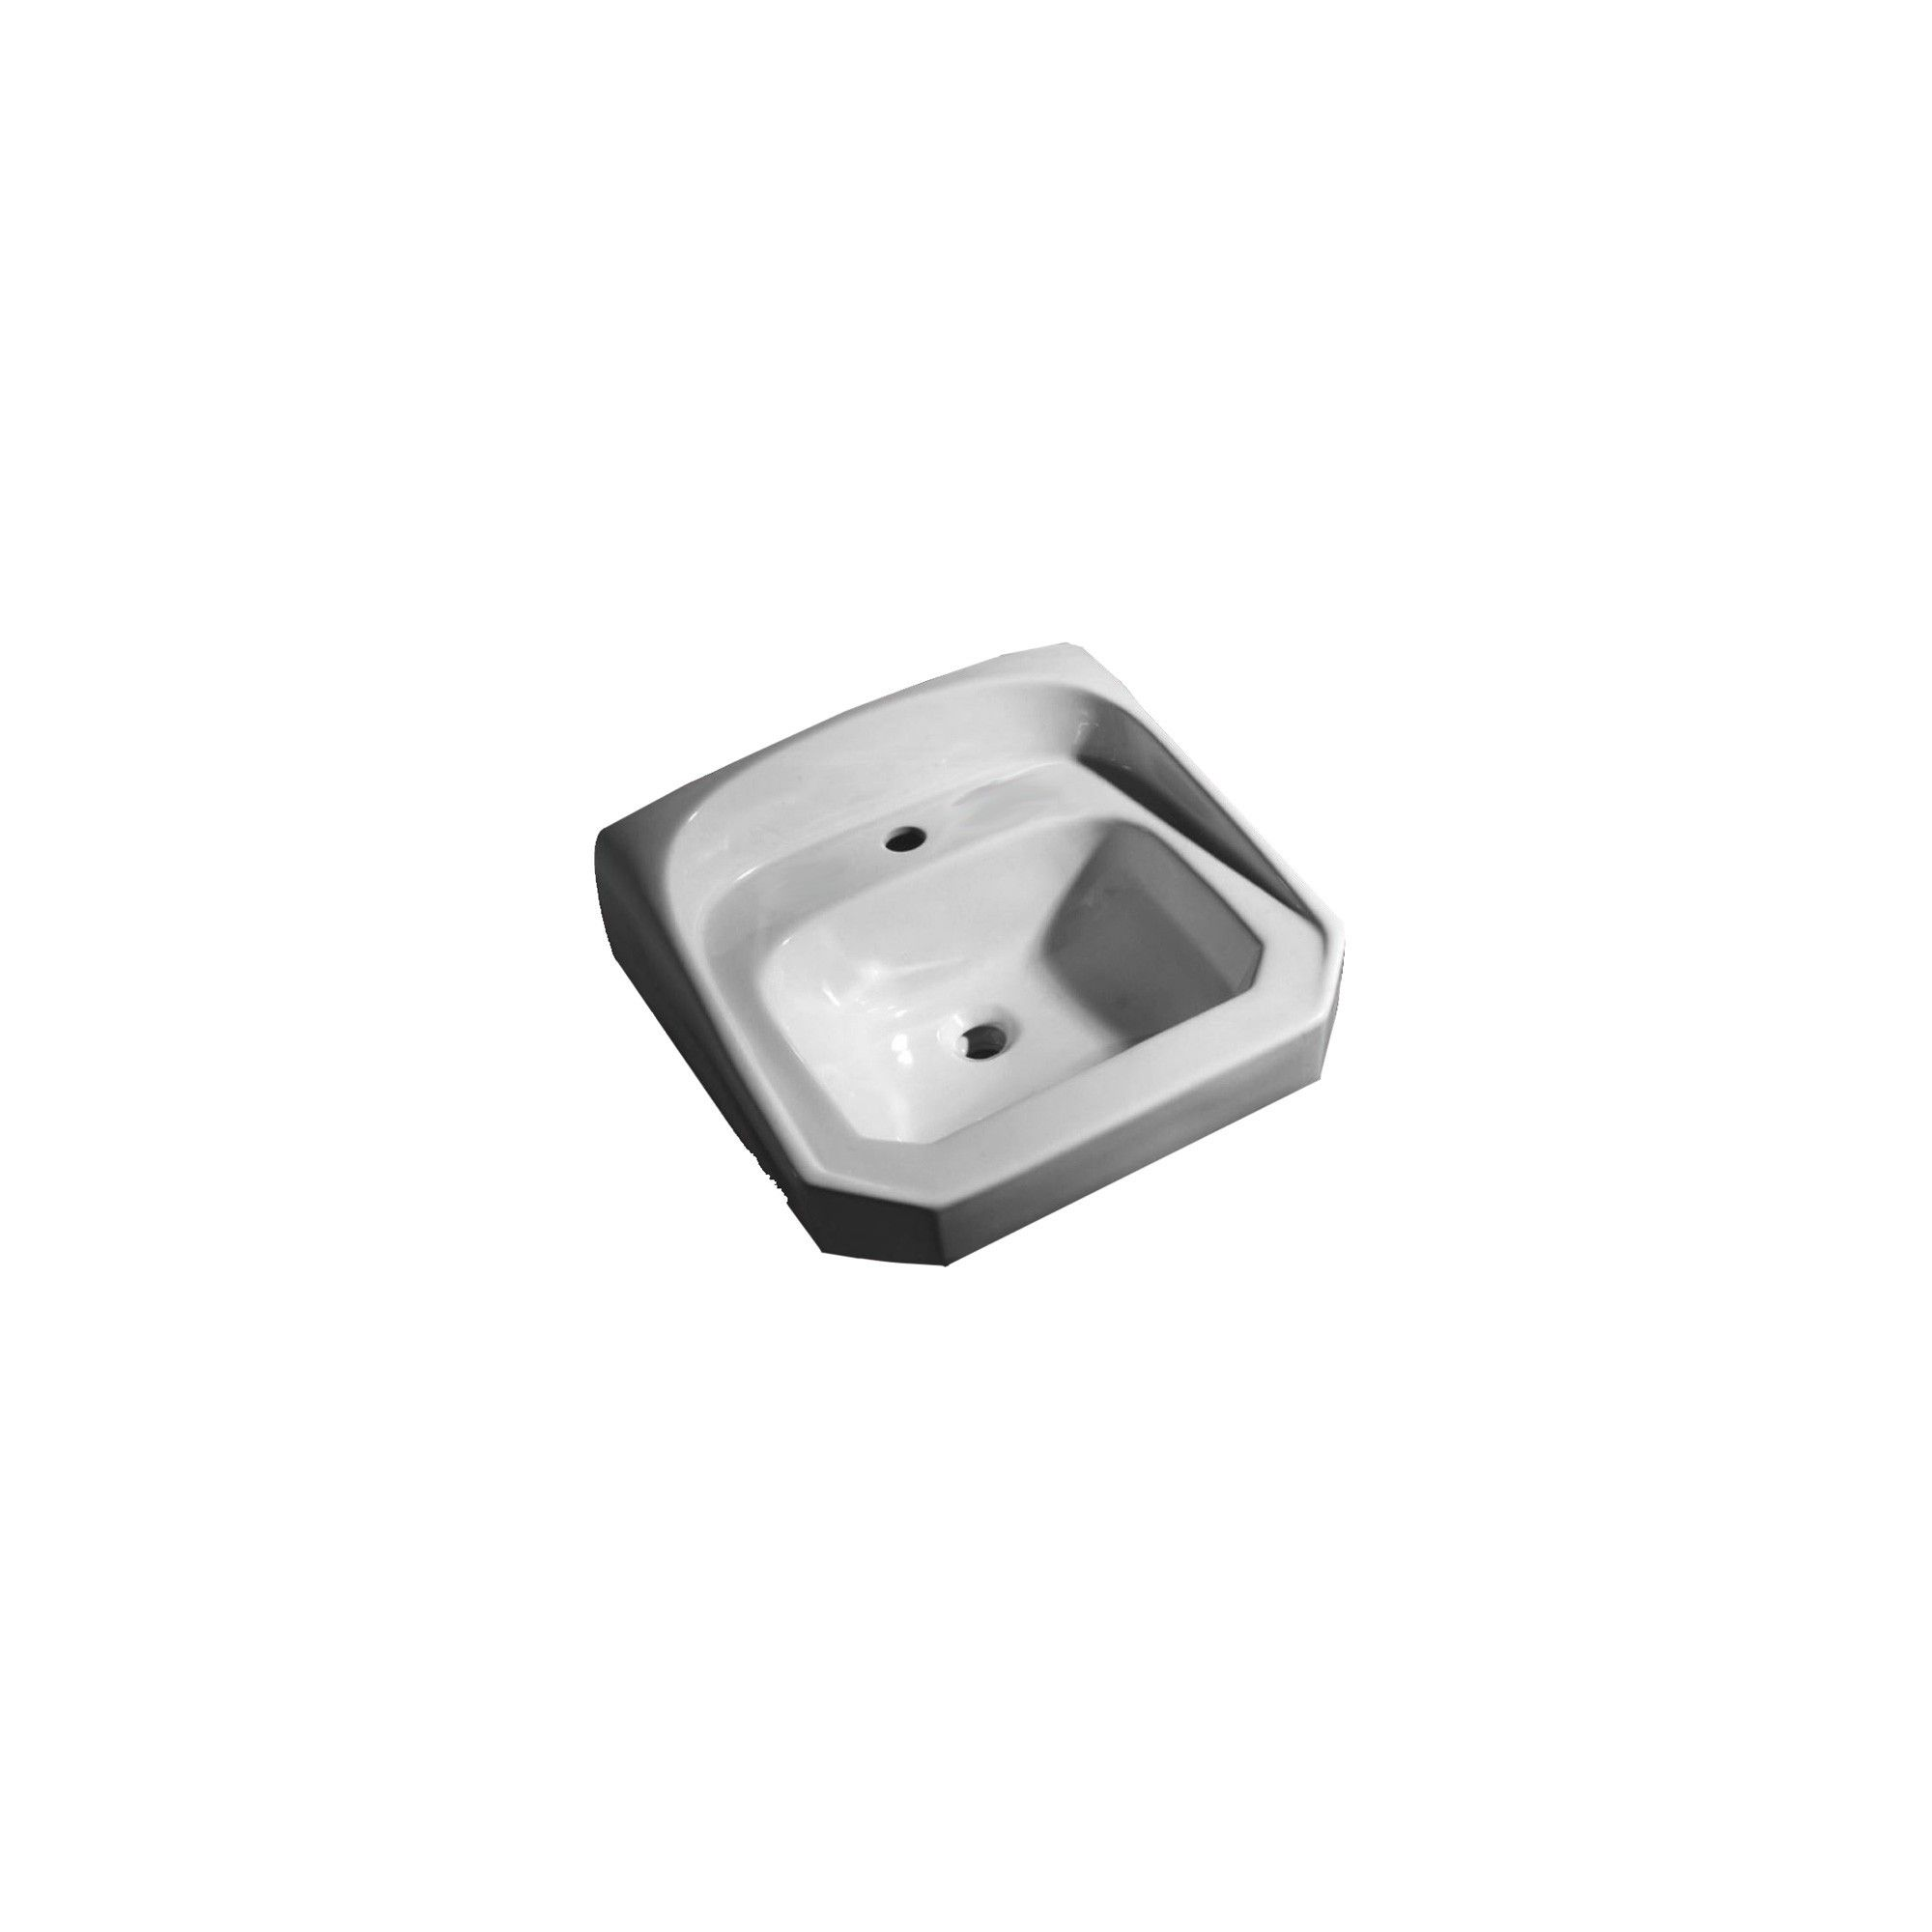 Proflo Pf5511 21 Wall Mounted Bathroom Sink White In 2019